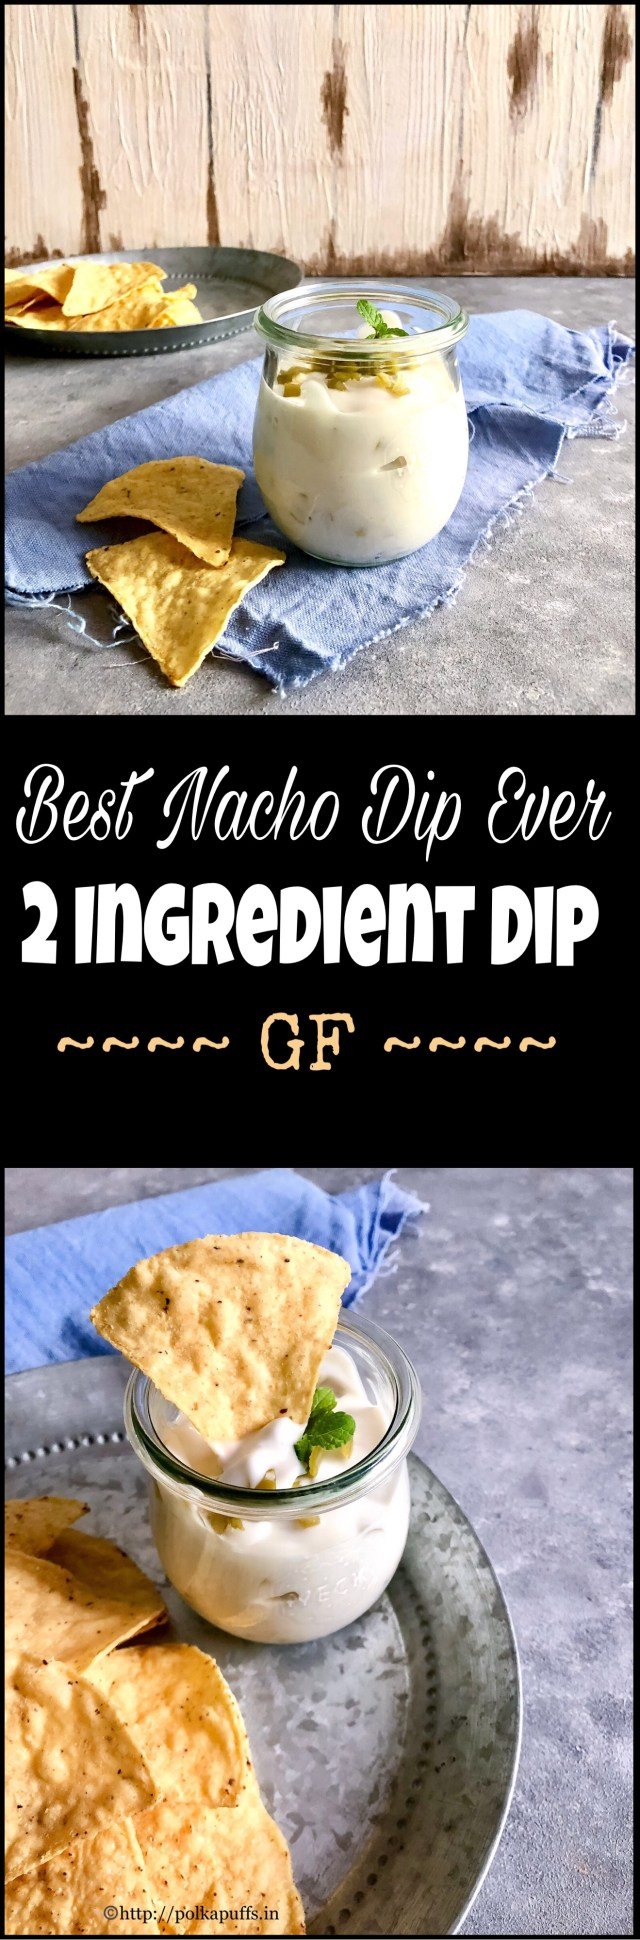 Best Nacho Dip Ever | 2 Ingredient Dip